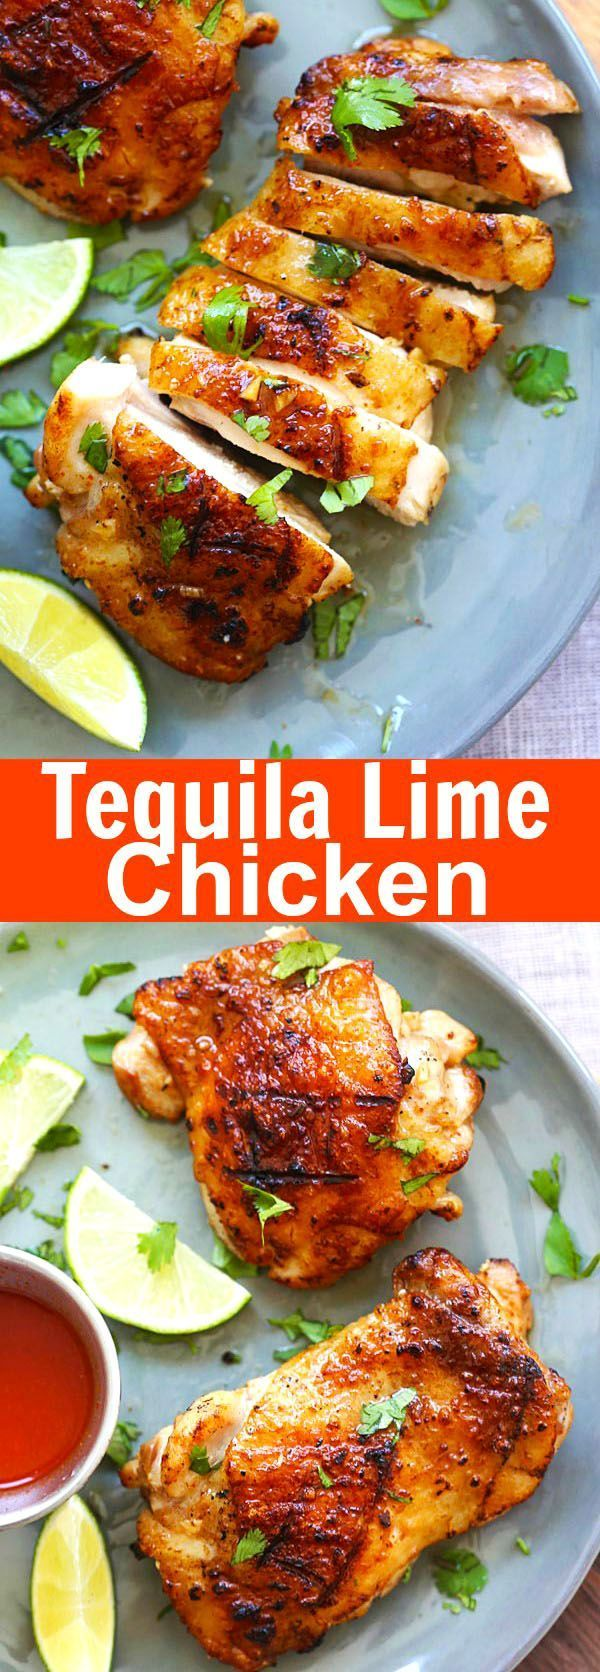 Tequila Lime Chicken – amazing chicken marinated with tequila, lime and garlic. This tequila lime chicken recipe tastes better than restaurant's | rasamalaysia.com